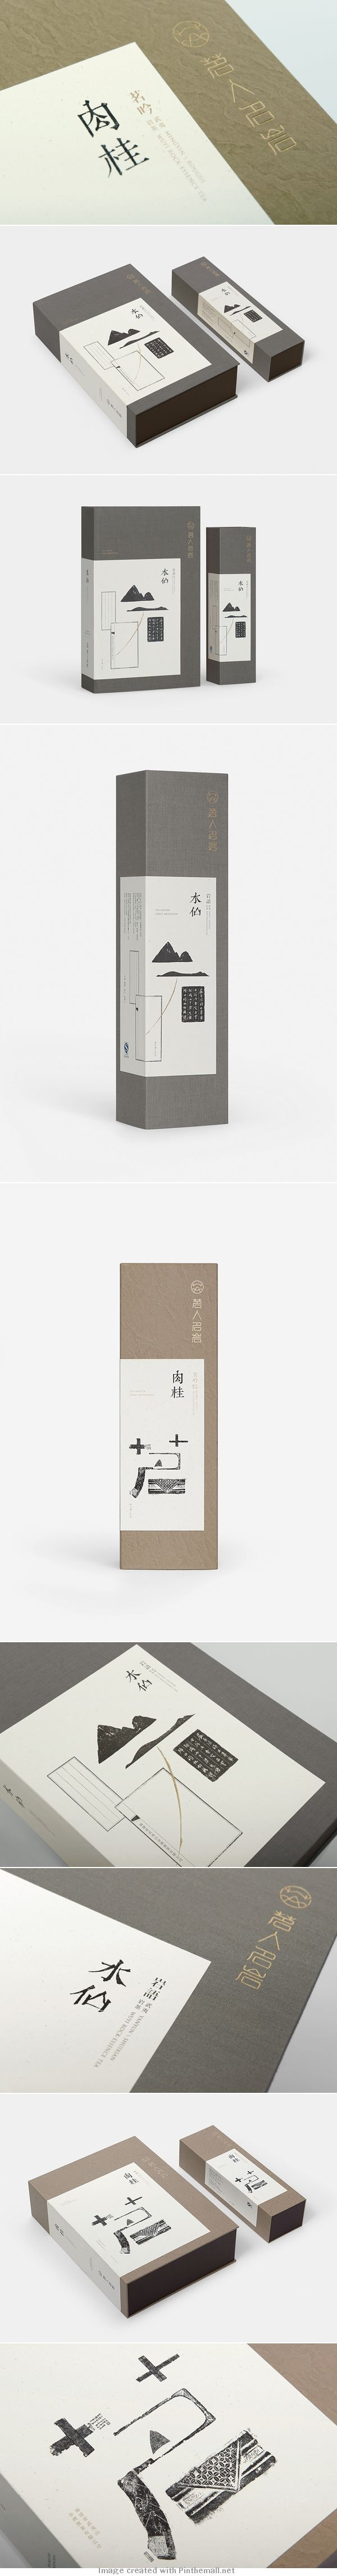 Unique Packaging Design on the Internet, Mingren Mingyan #packagingdesign #packaging